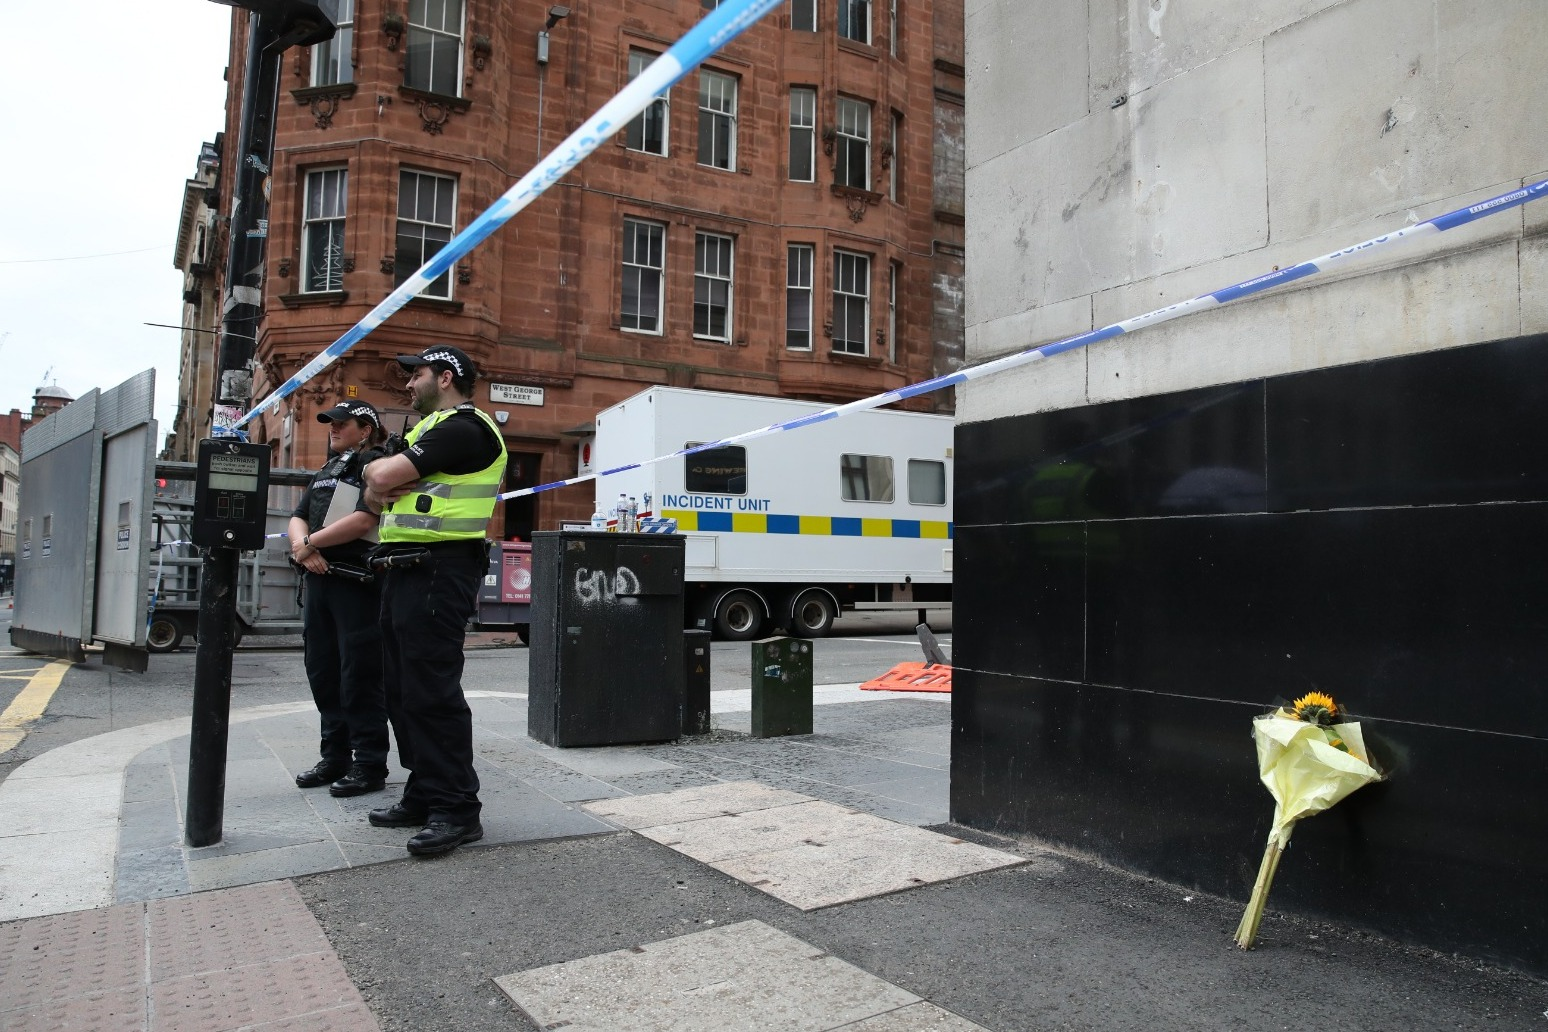 Glasgow - Injured policeman \'stable\' after knife attack